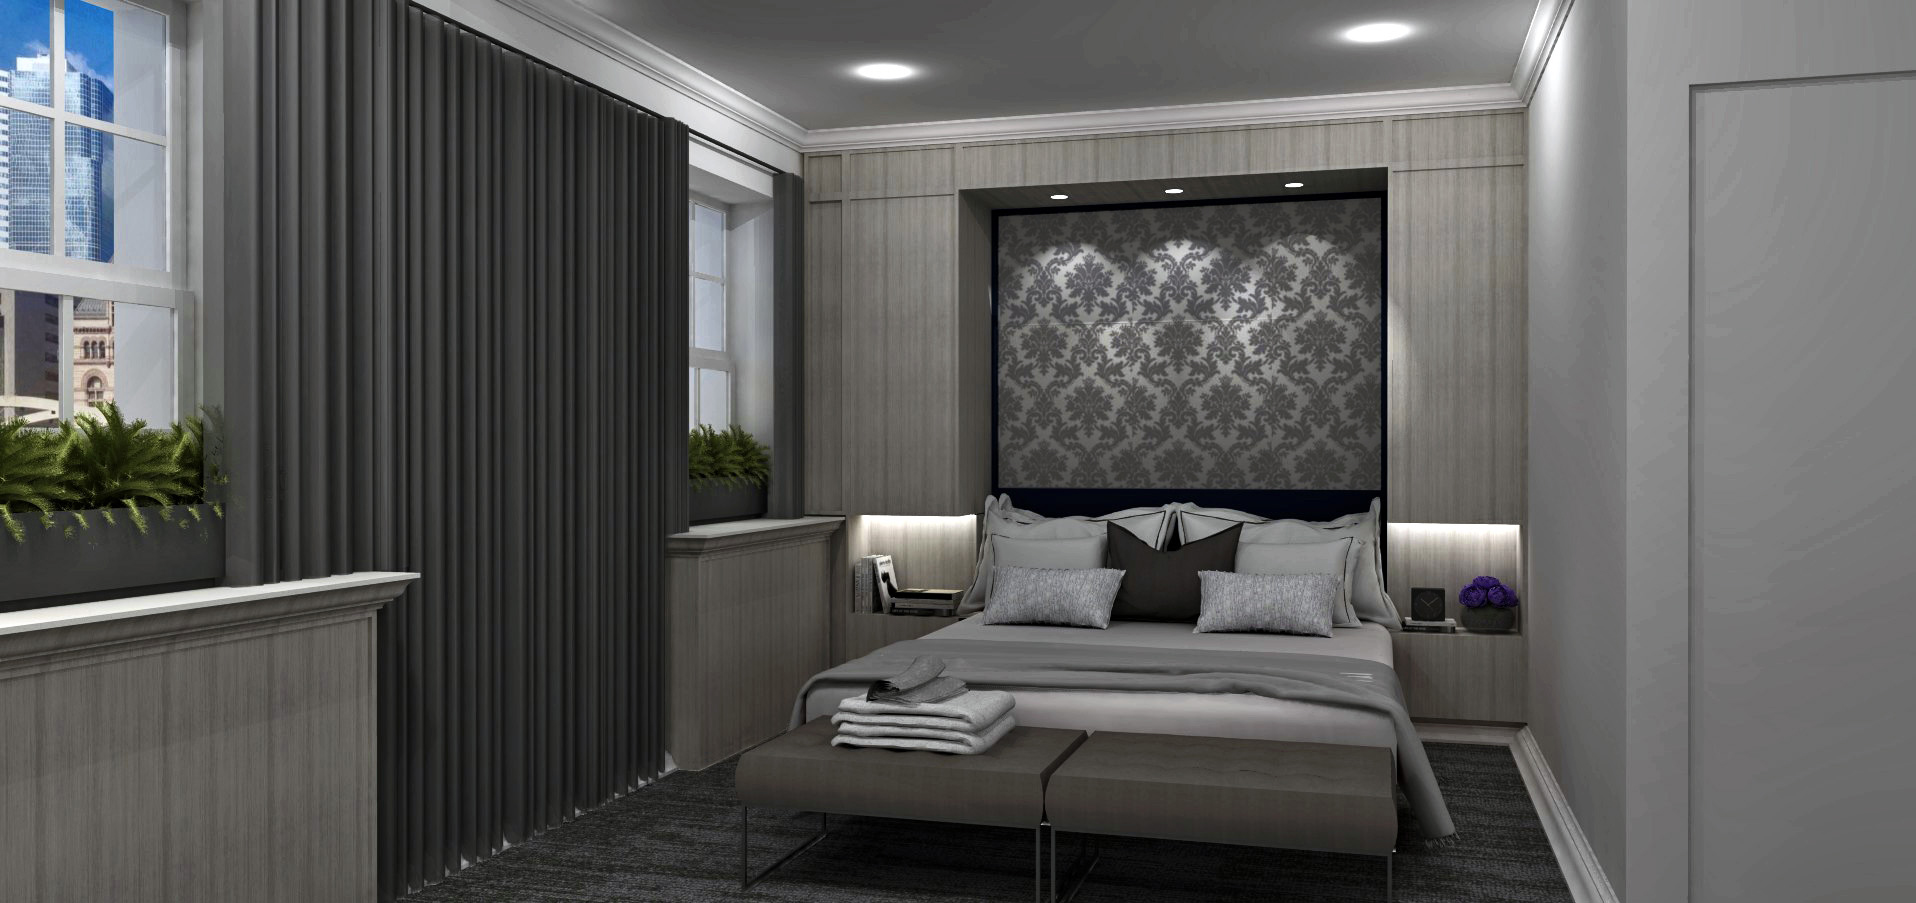 The National Club hotel suite with grey patterned wall paper behind bed, grey walls, and charcoal drapery